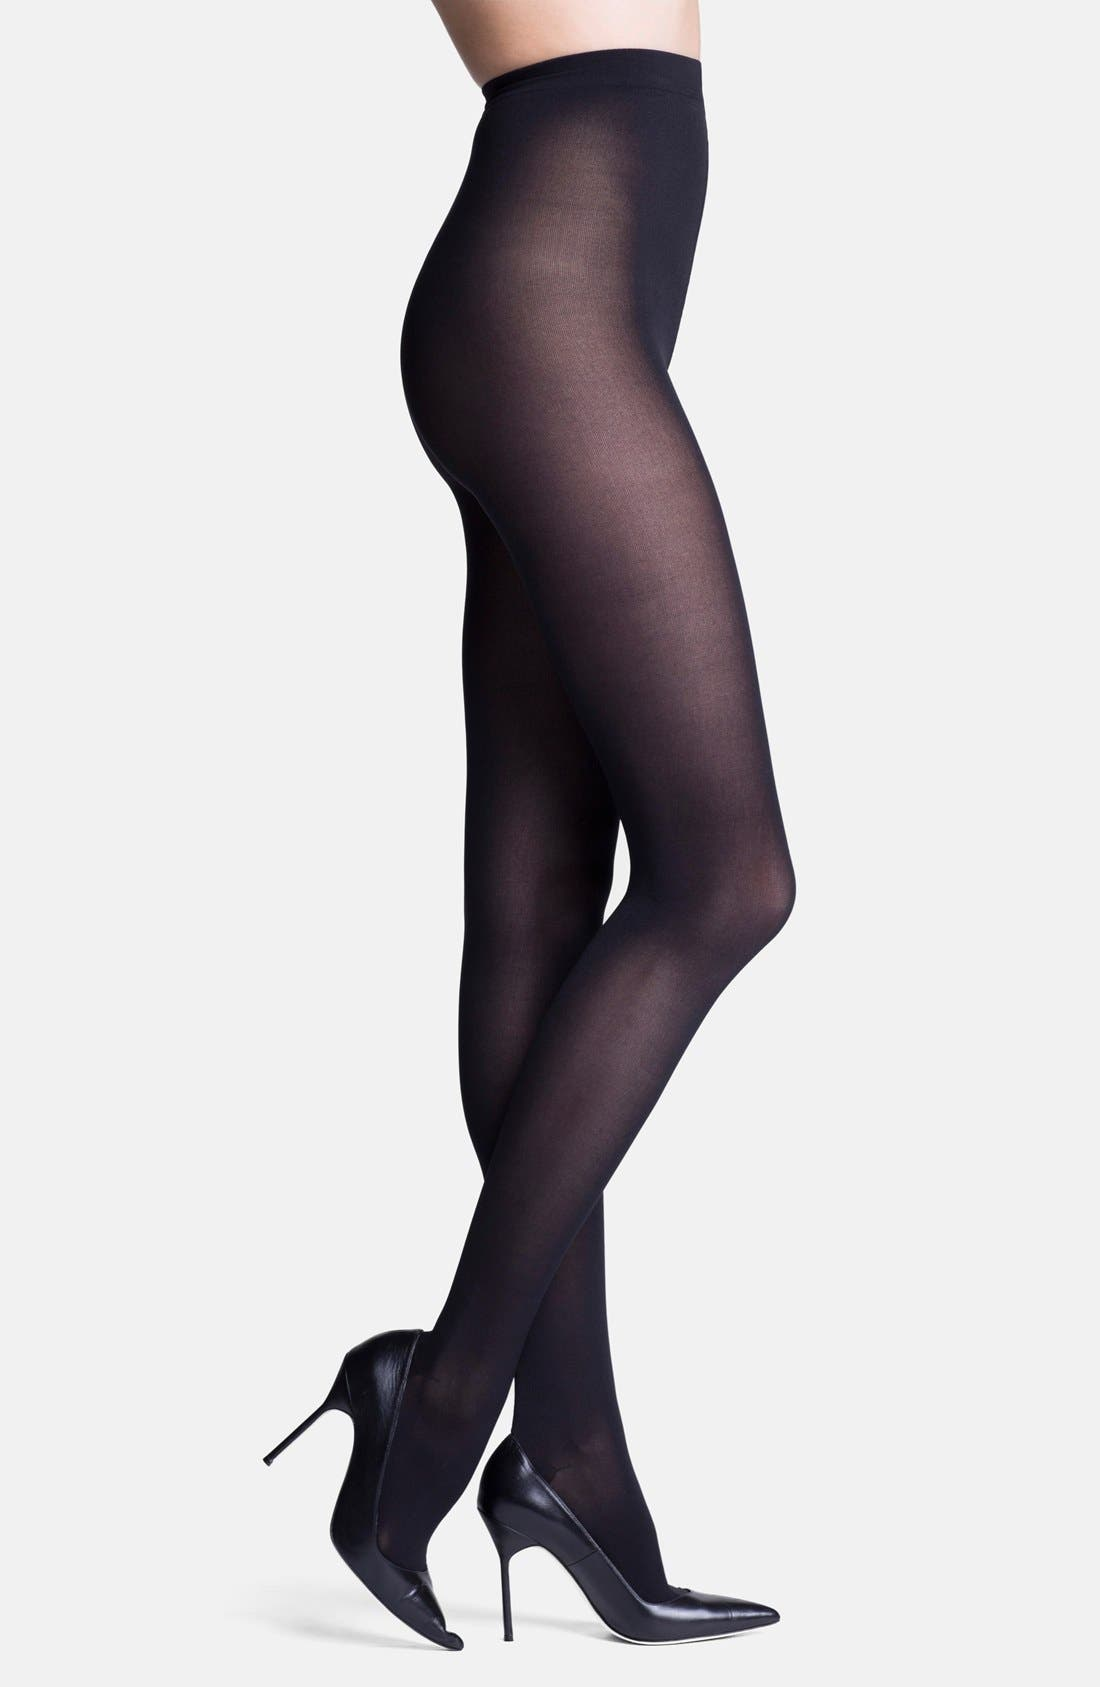 b342ed14b2 Women's Insignia By Sigvaris Tights & Pantyhose | Nordstrom